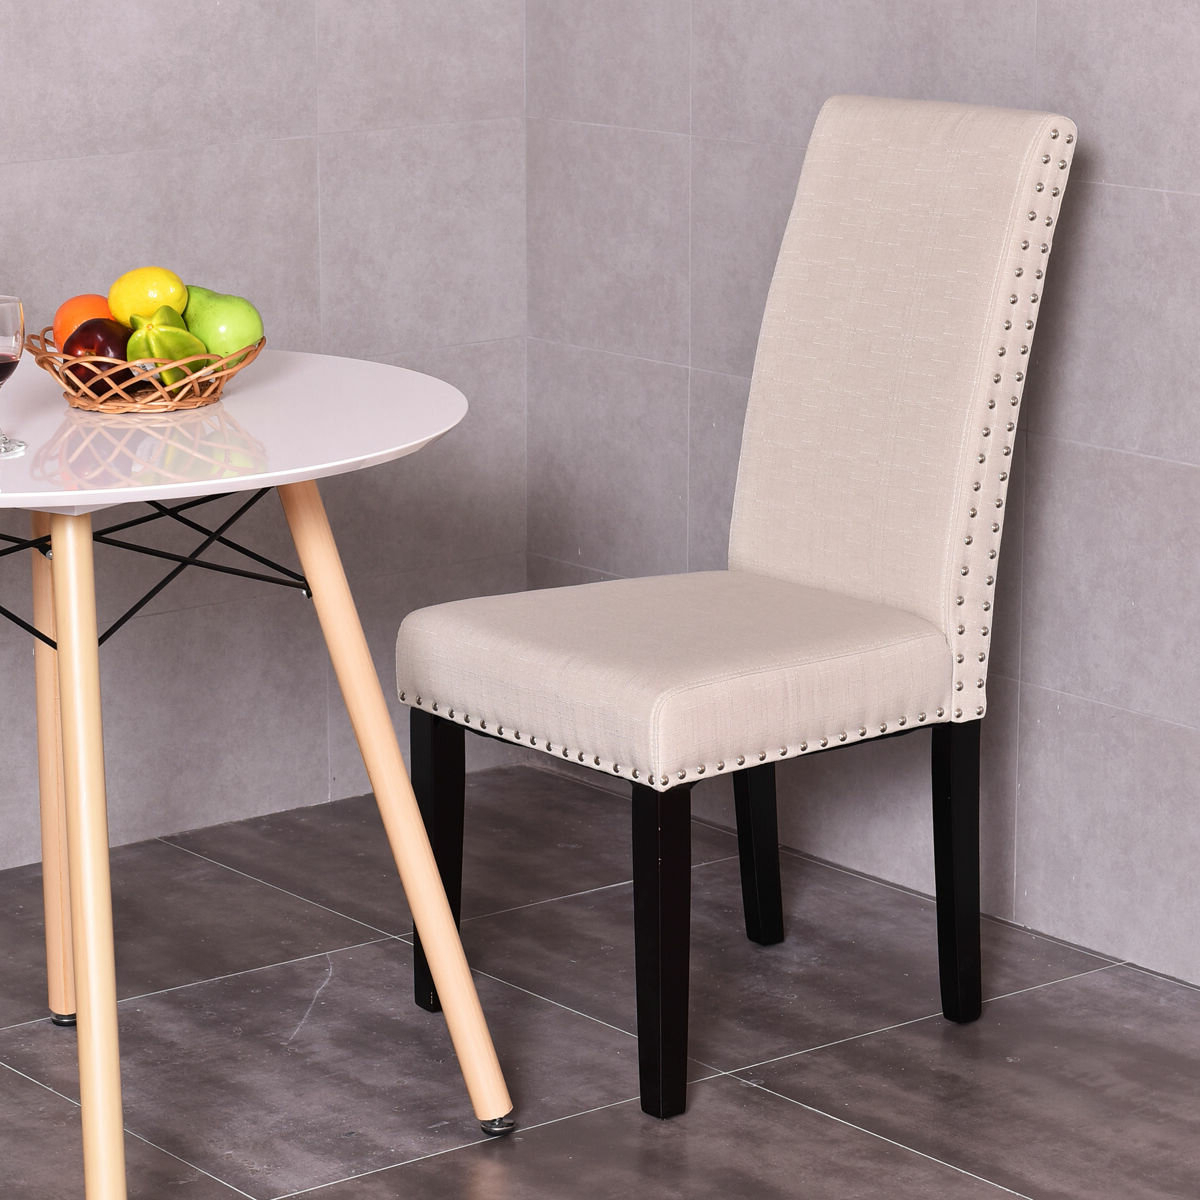 Widely Used Bob Stripe Upholstered Dining Chairs (set Of 2) Throughout Regil Upholstered Dining Chair (View 8 of 20)